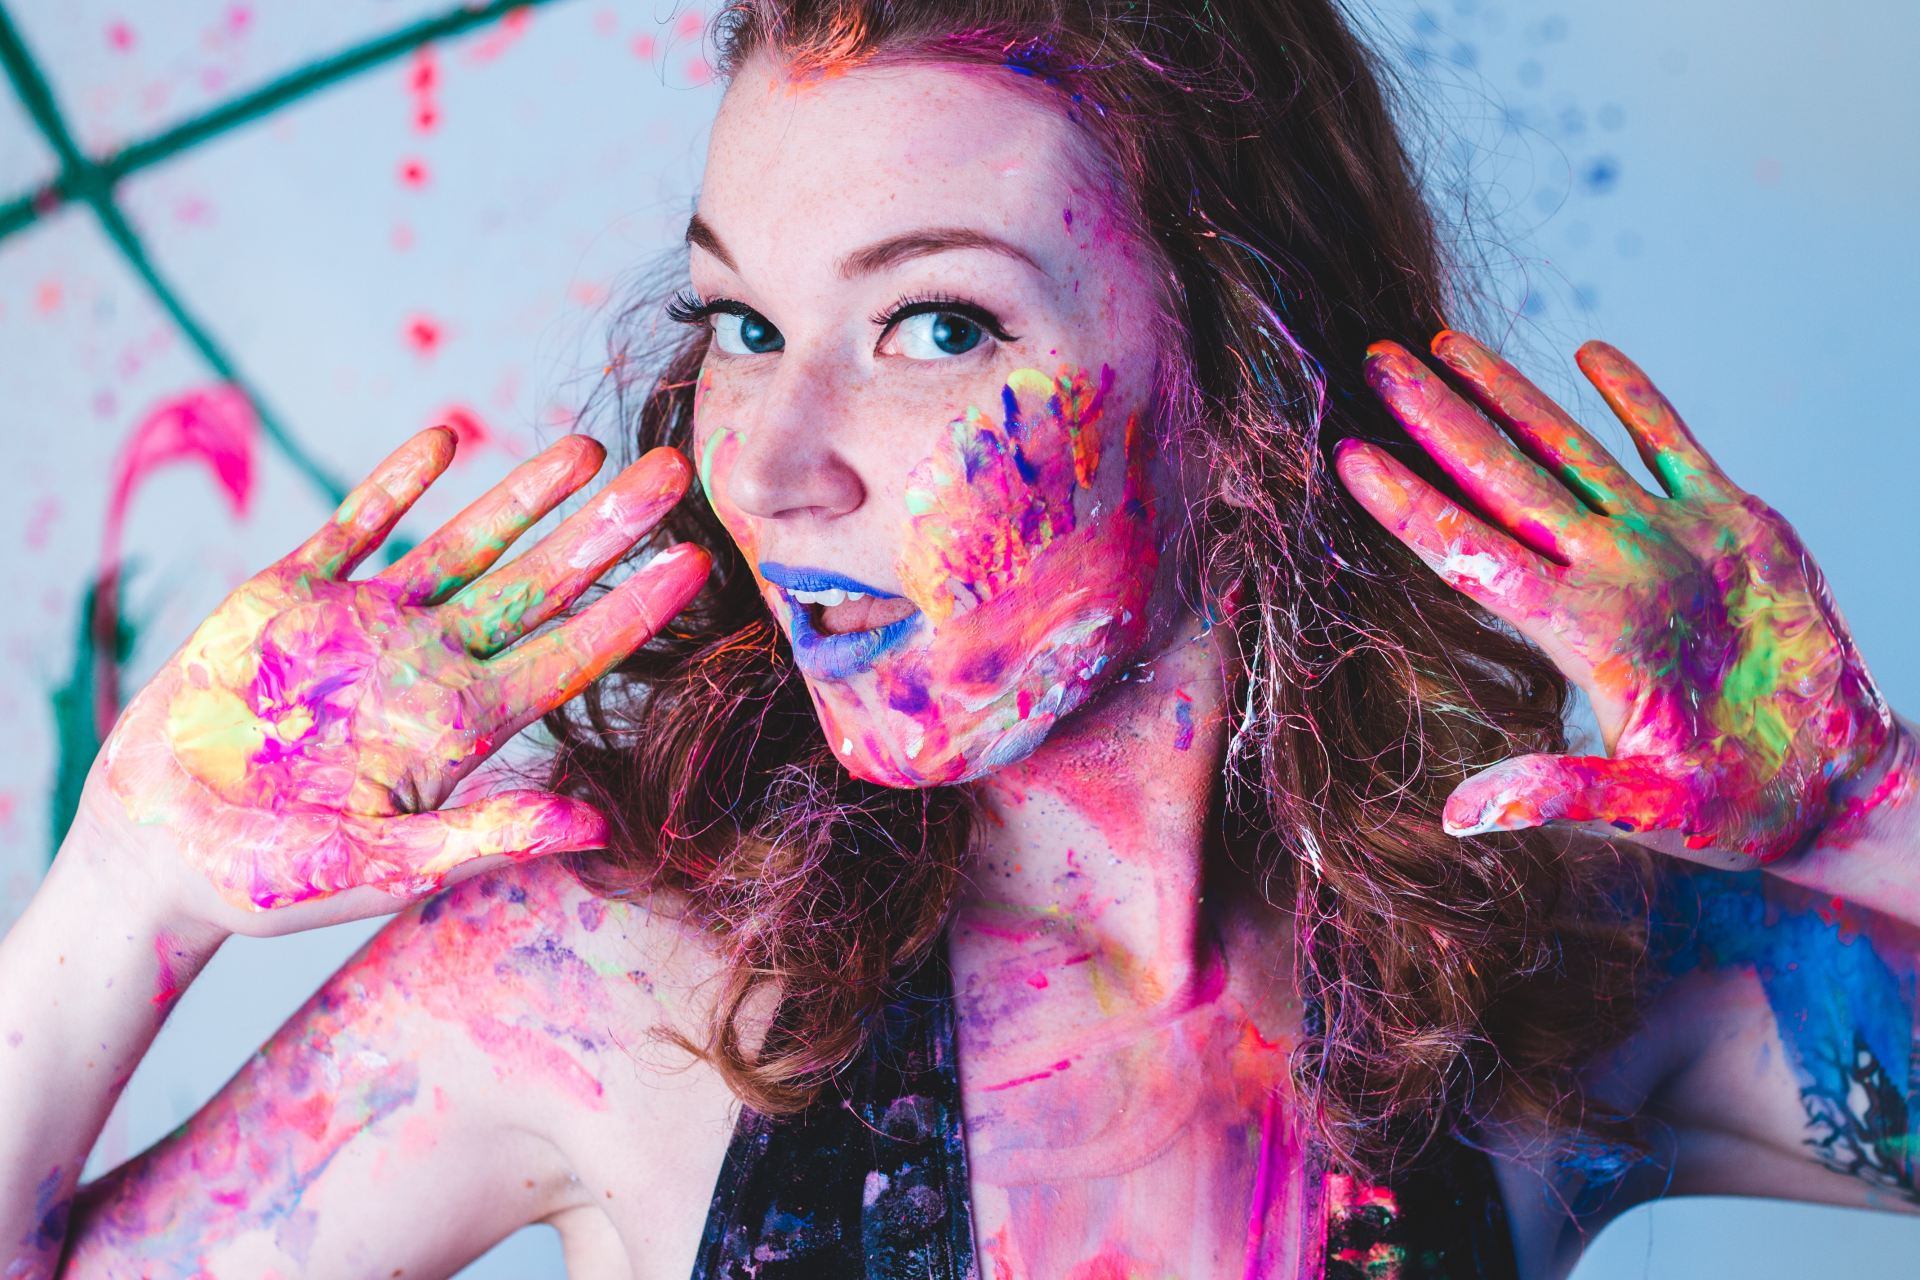 I Went To A Sketchy Club For A 'Paint Party'